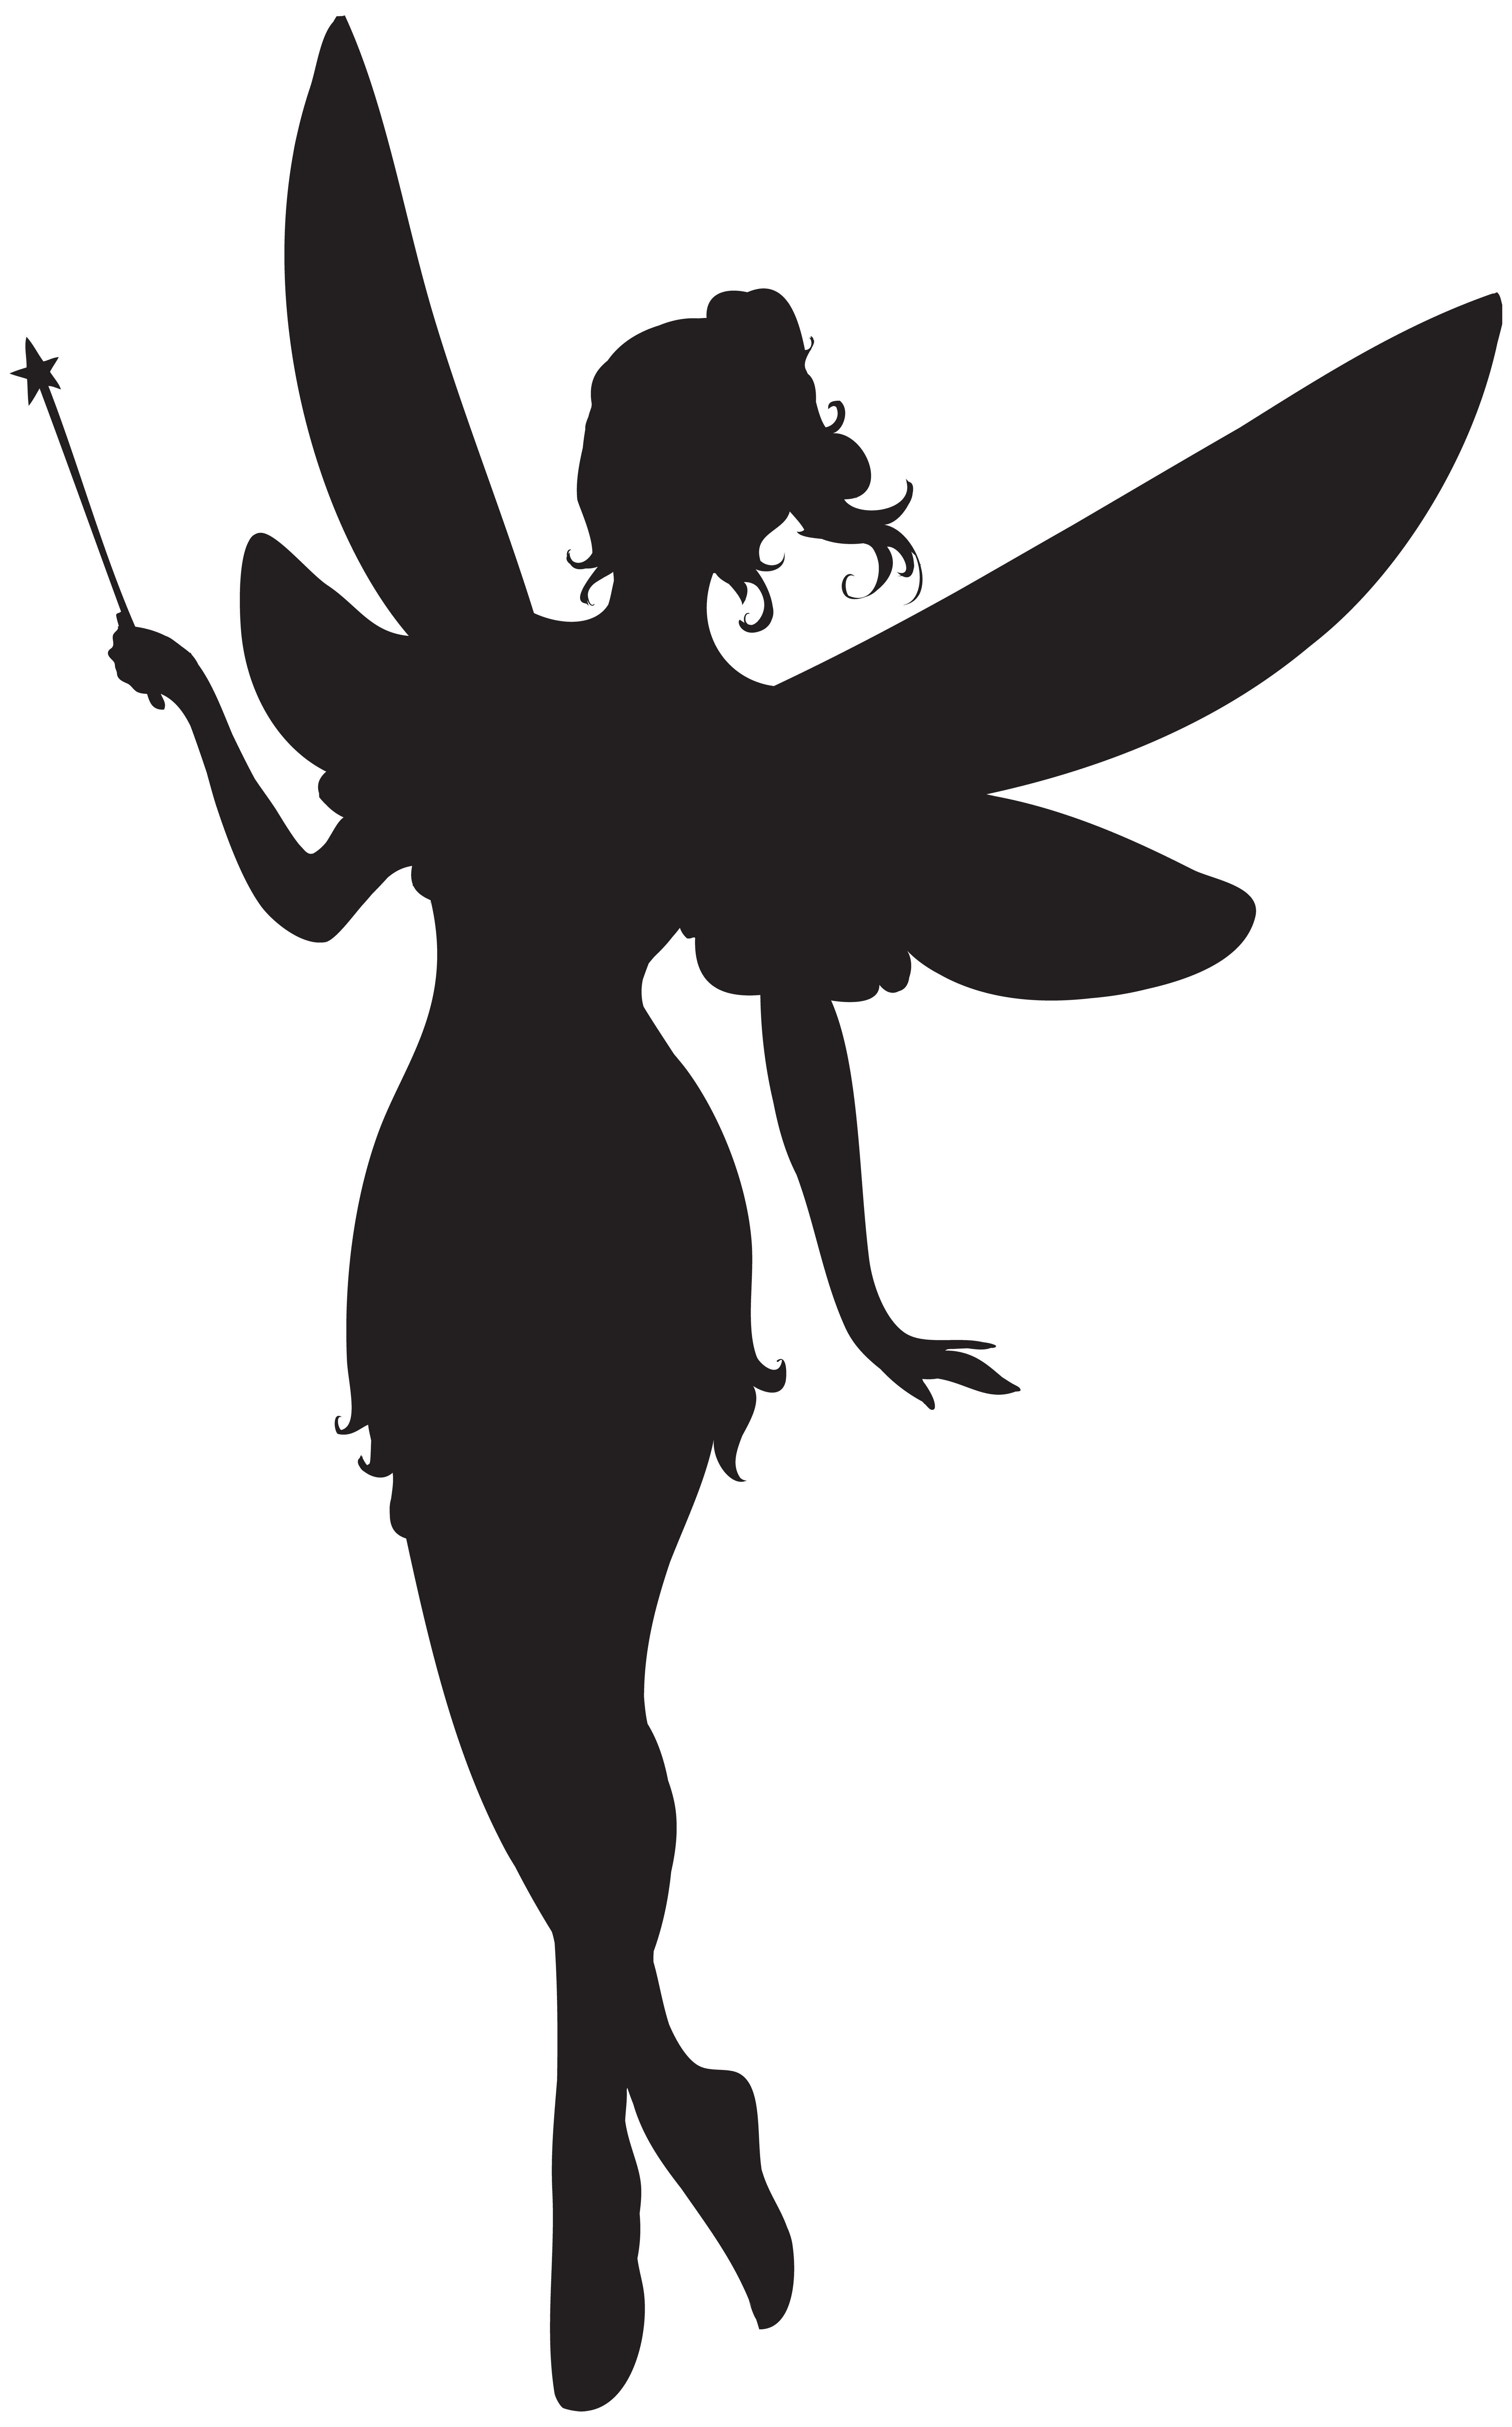 Free clipart fairy. With magic wand silhouette